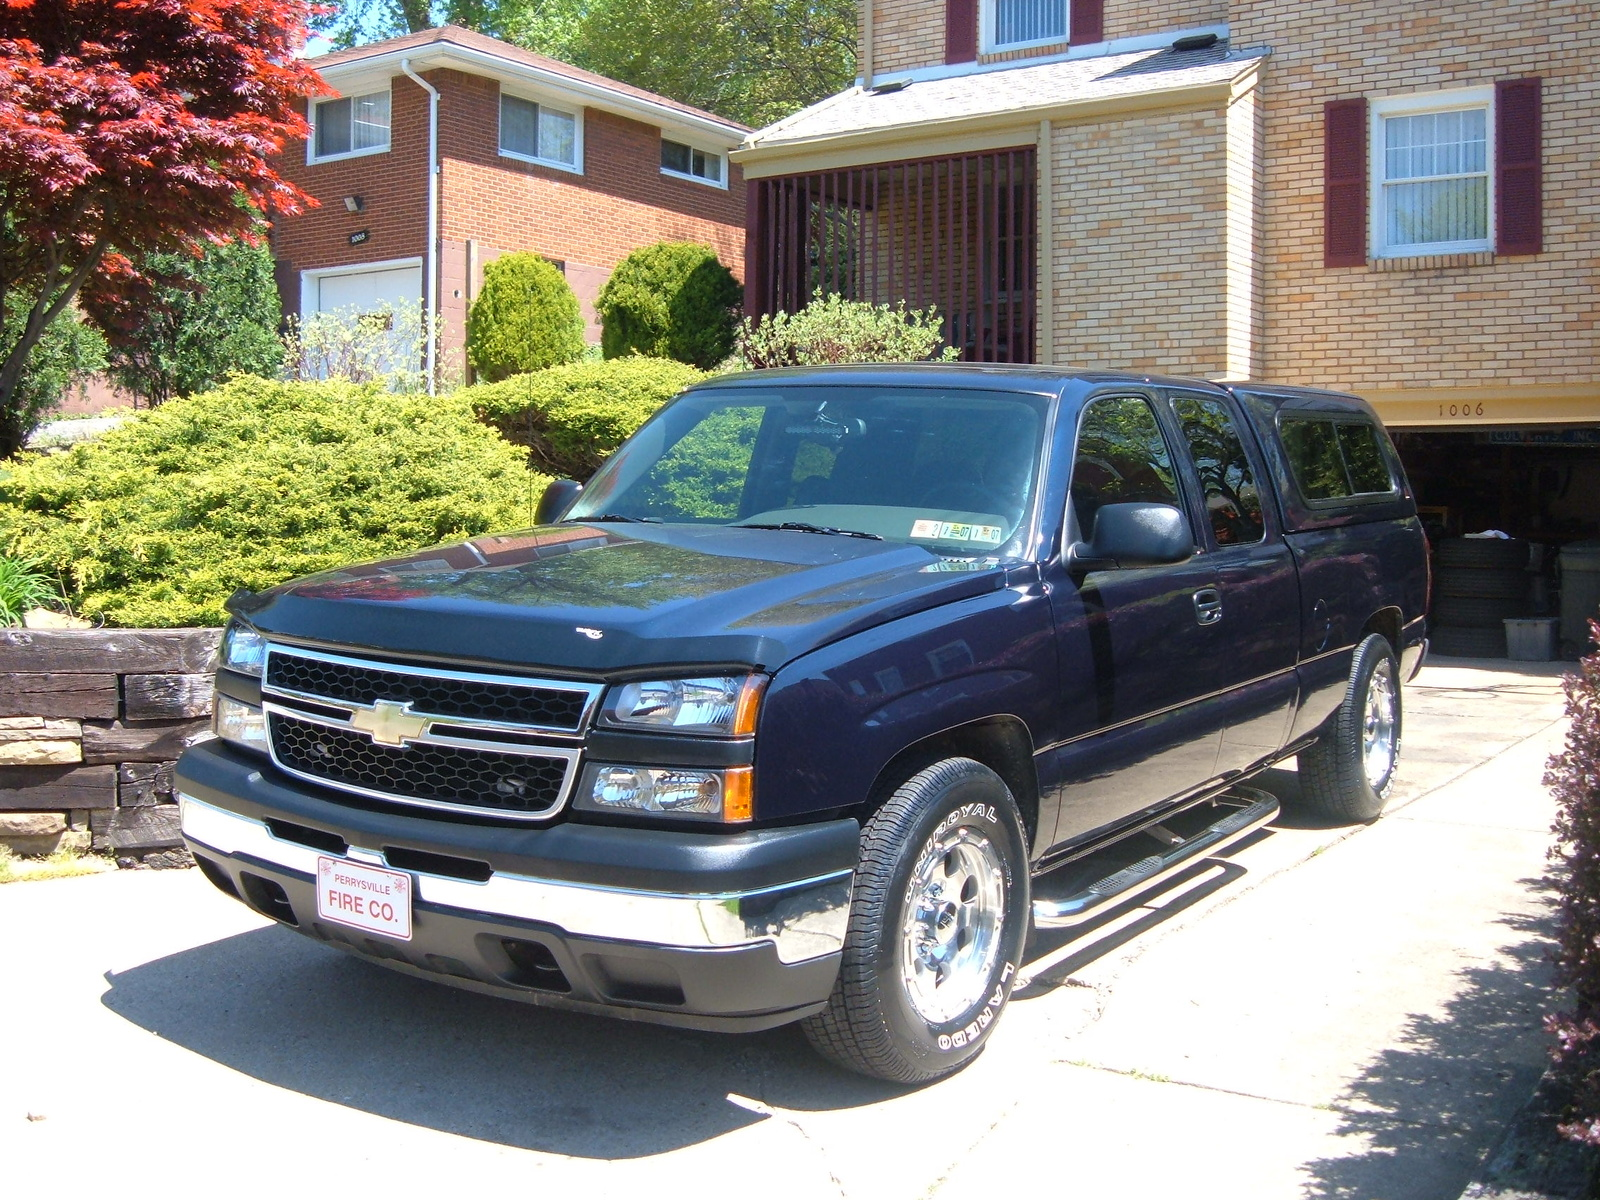 2007 chevrolet silverado classic 1500 work truck extended cab picture exterior. Black Bedroom Furniture Sets. Home Design Ideas